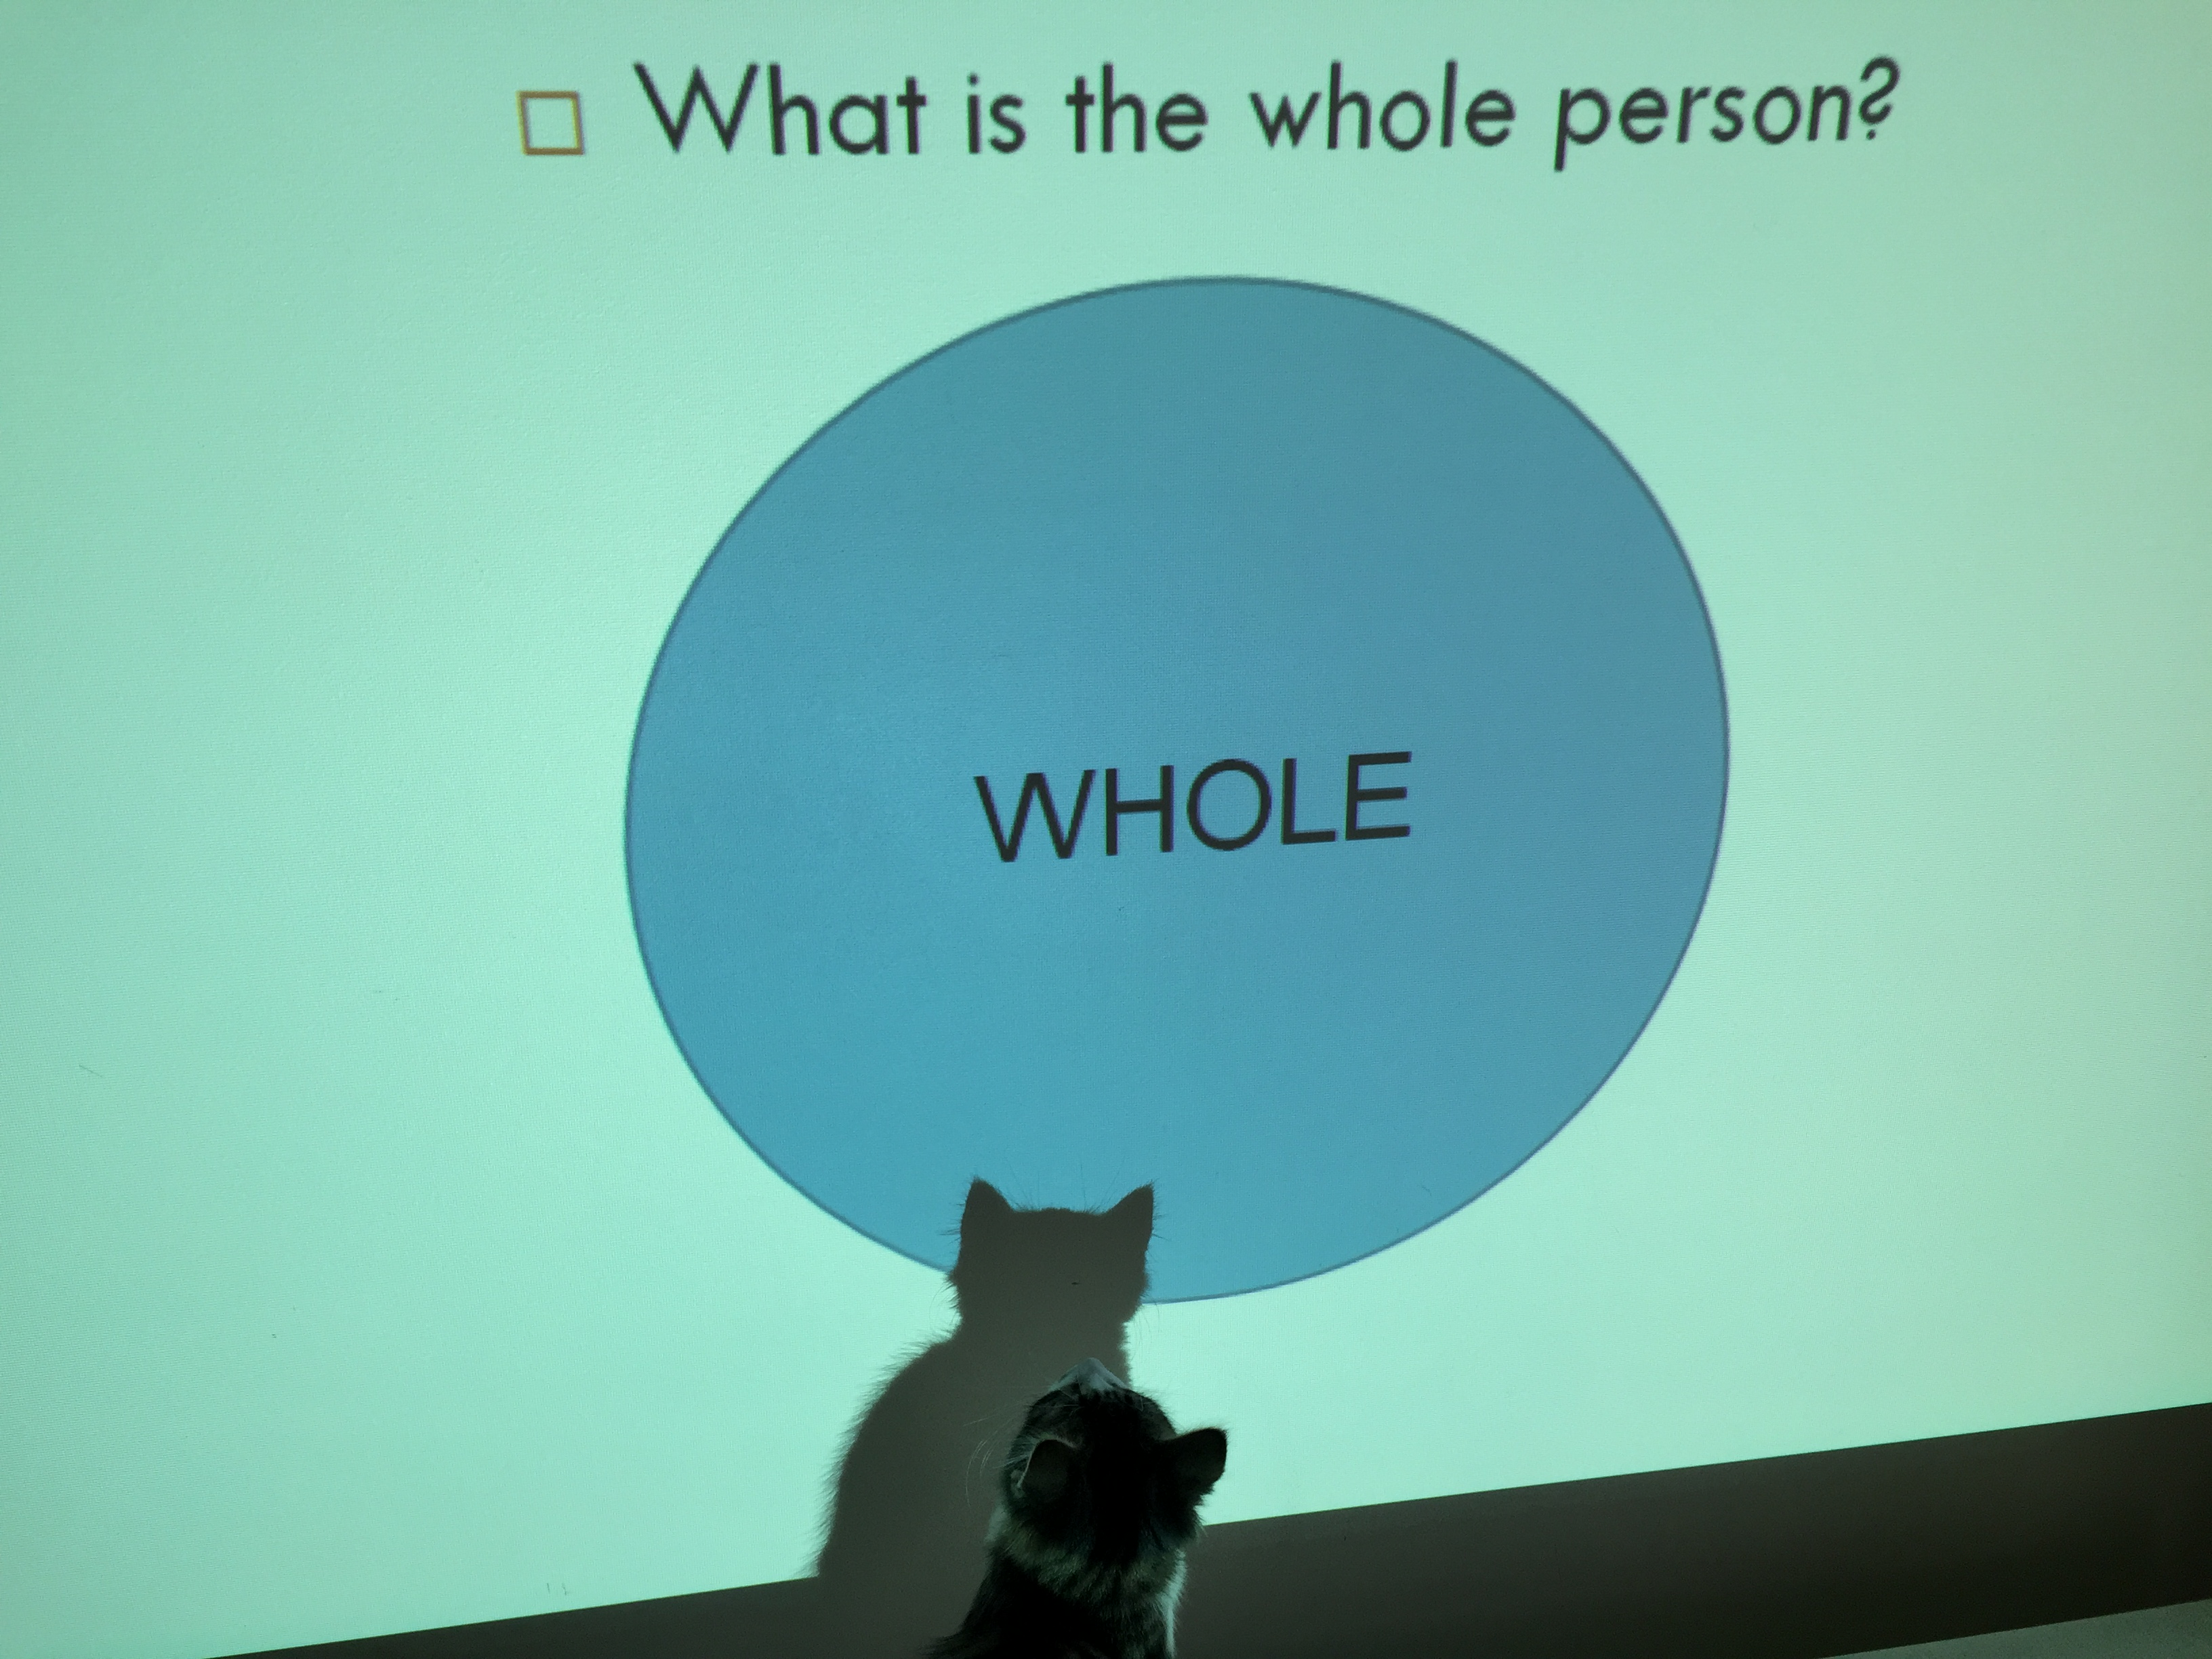 What is the whole?